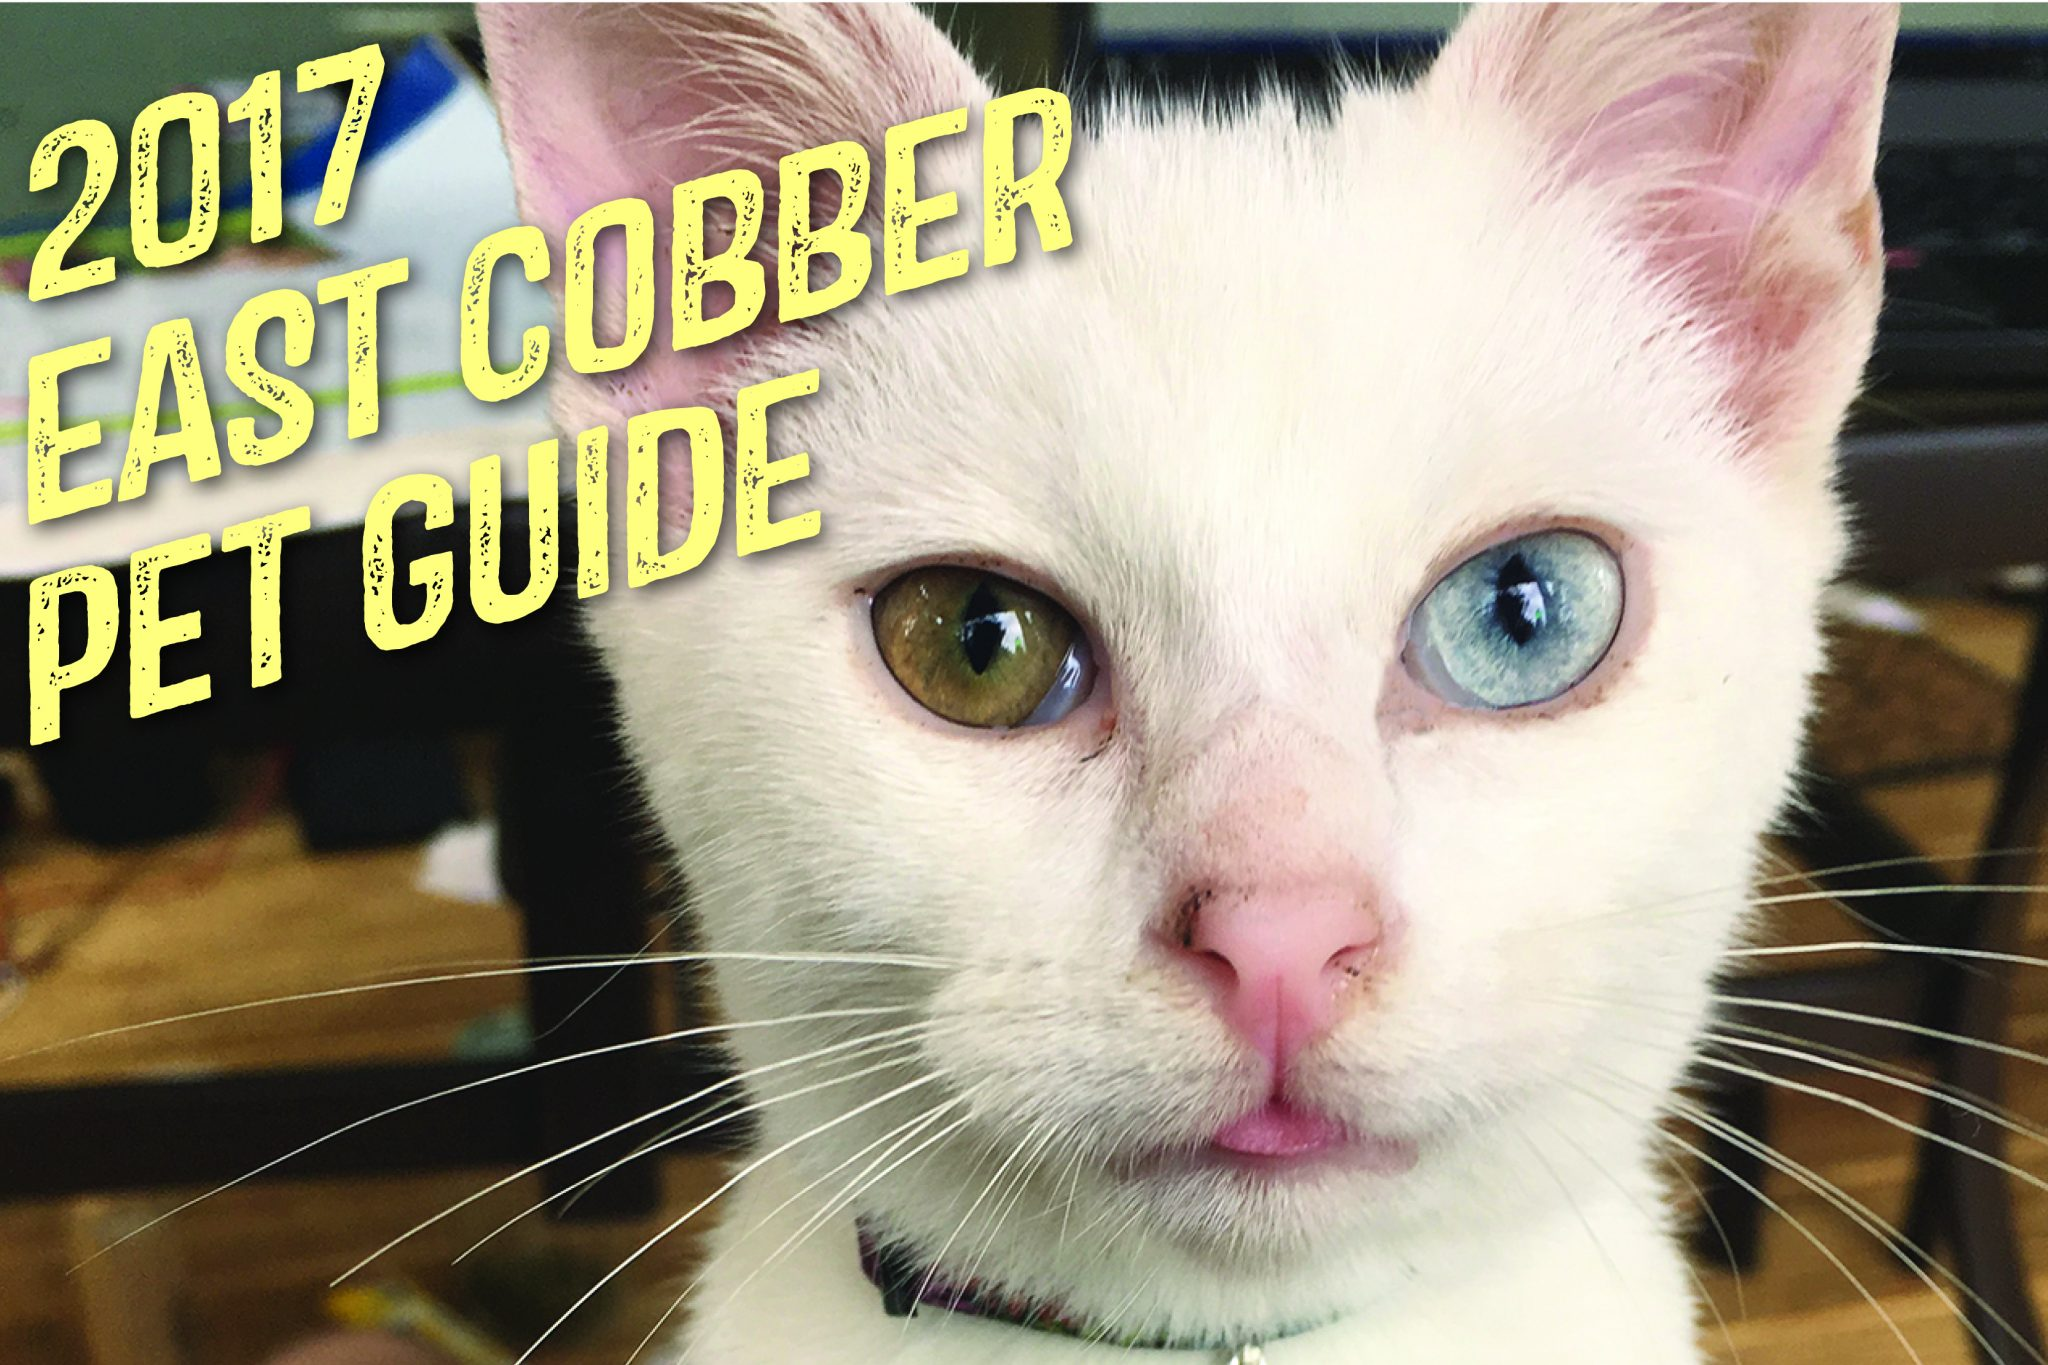 EAST COBBER is Proud to Announce Its 11th Annual Pet Guide 4